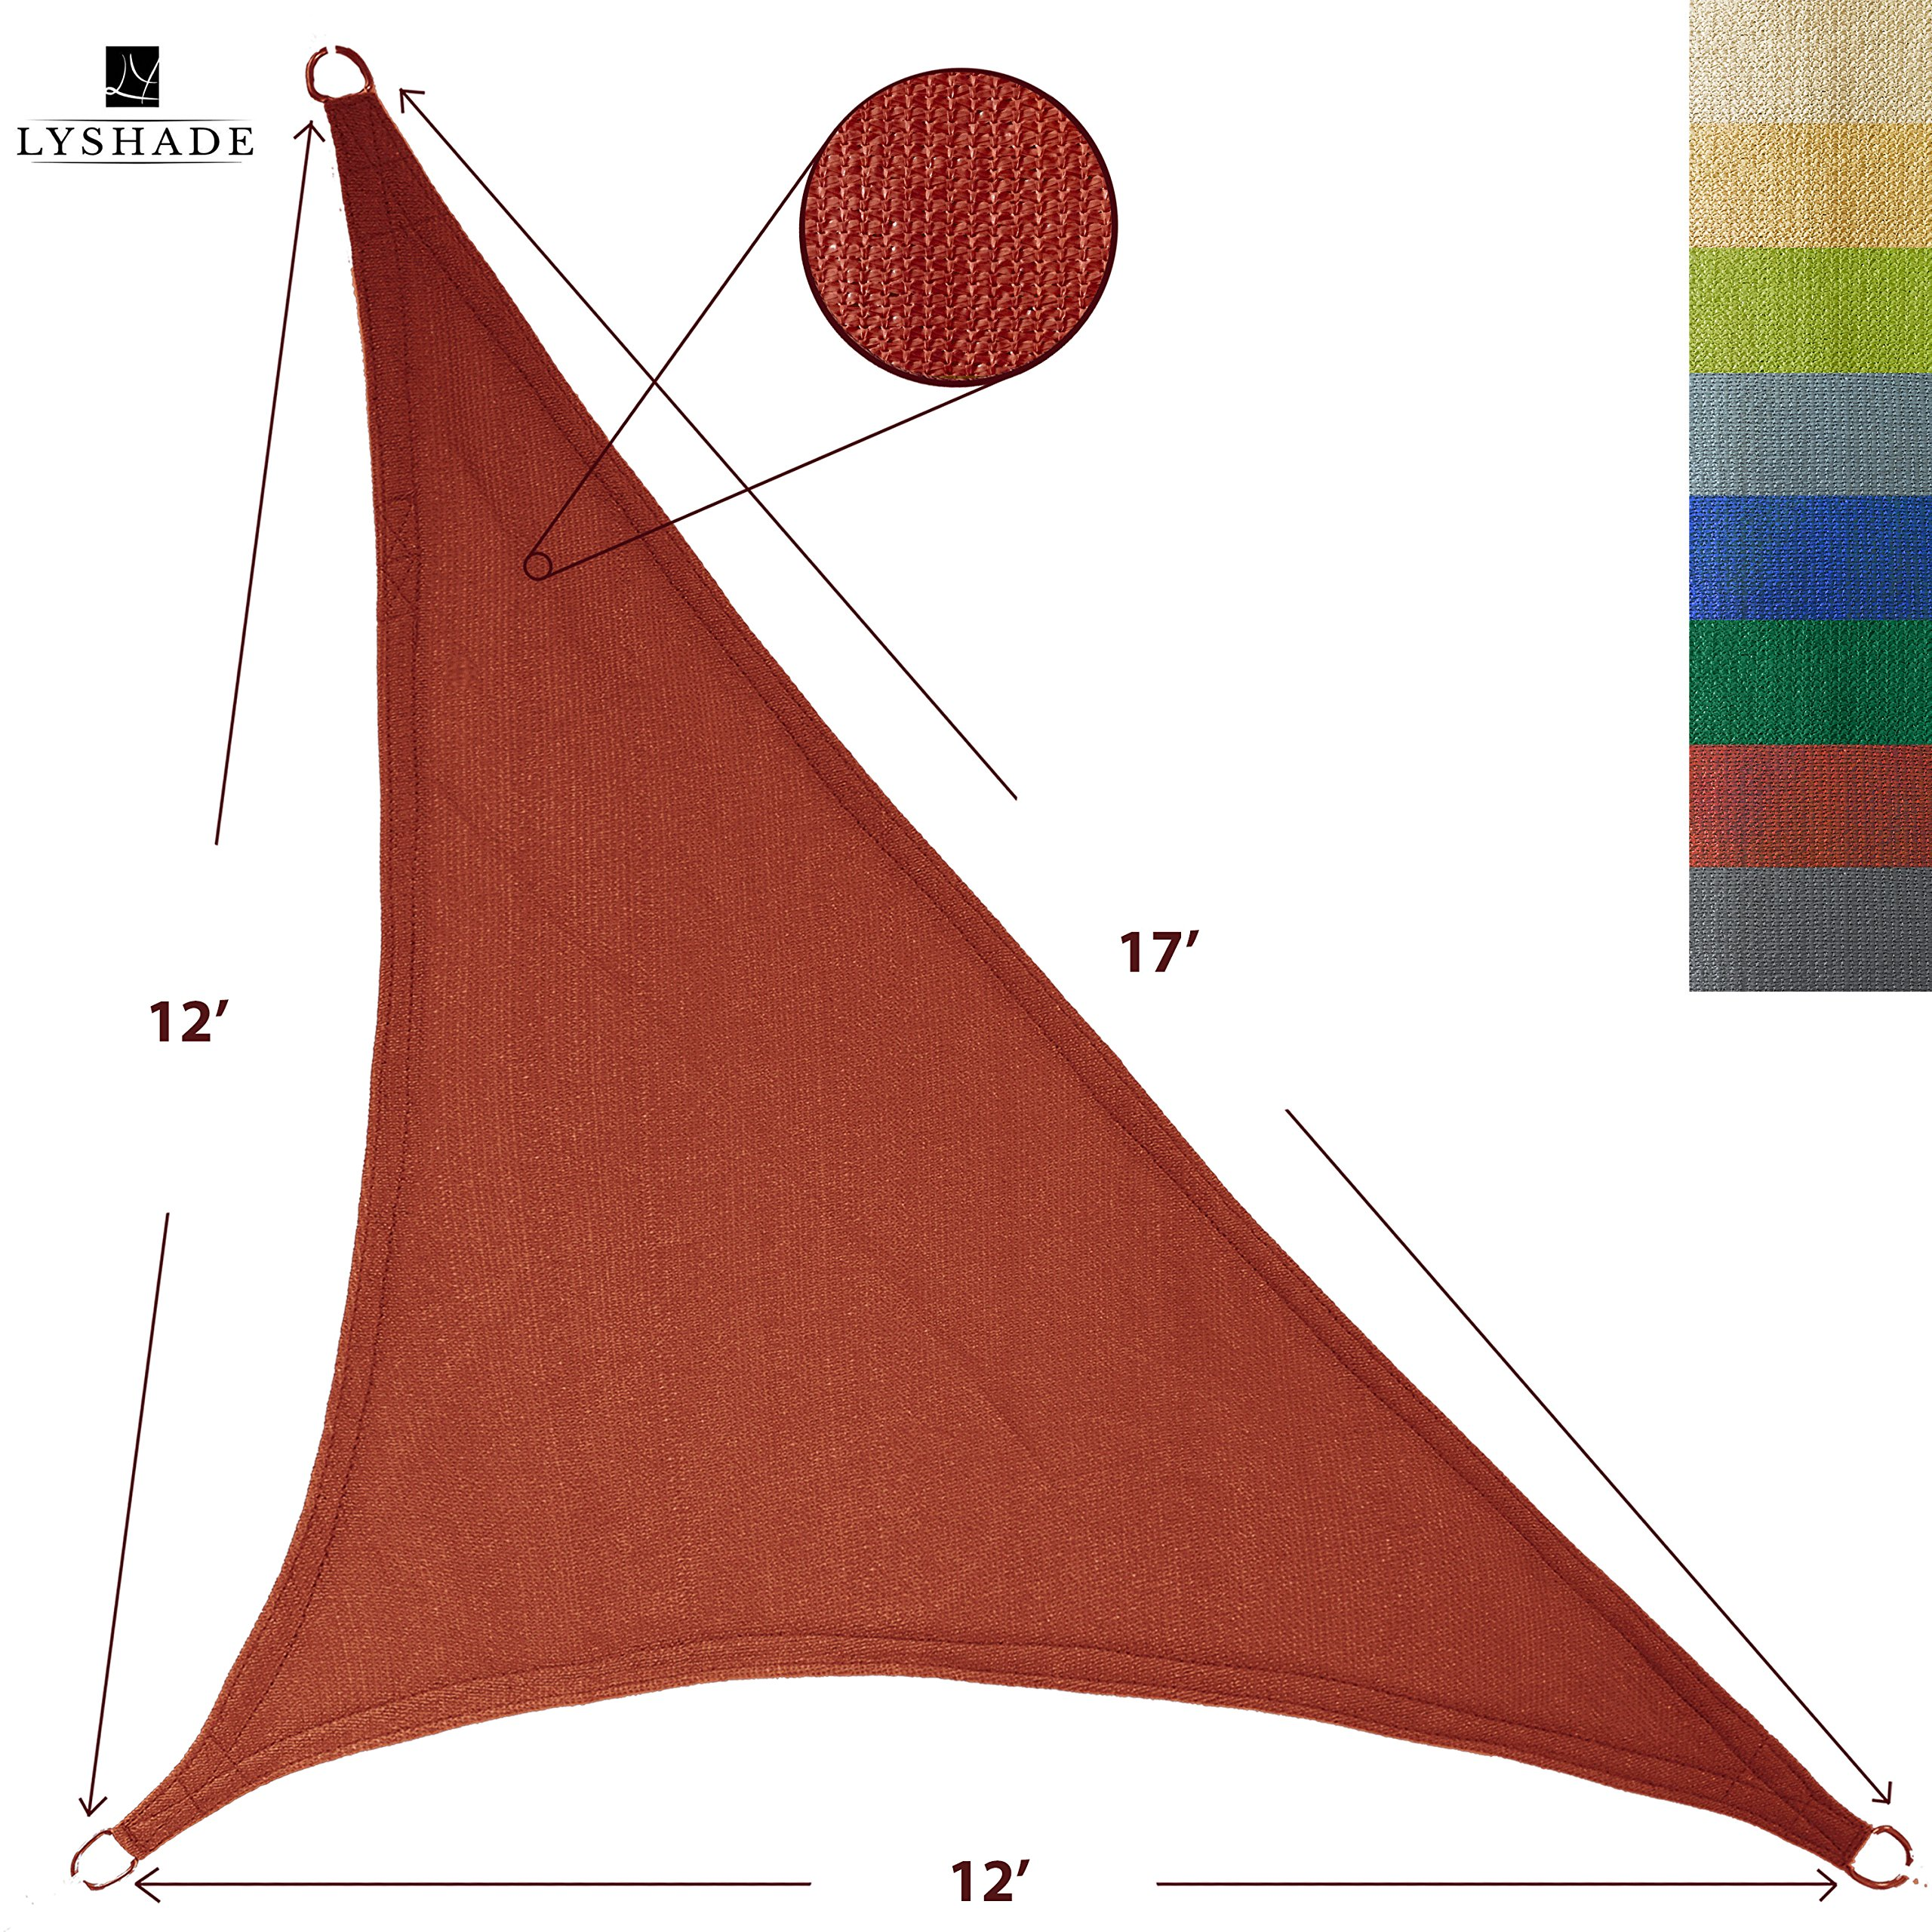 LyShade 12' x 12' x 17' Right Triangle Sun Shade Sail Canopy (Terracotta) - UV Block for Patio and Outdoor